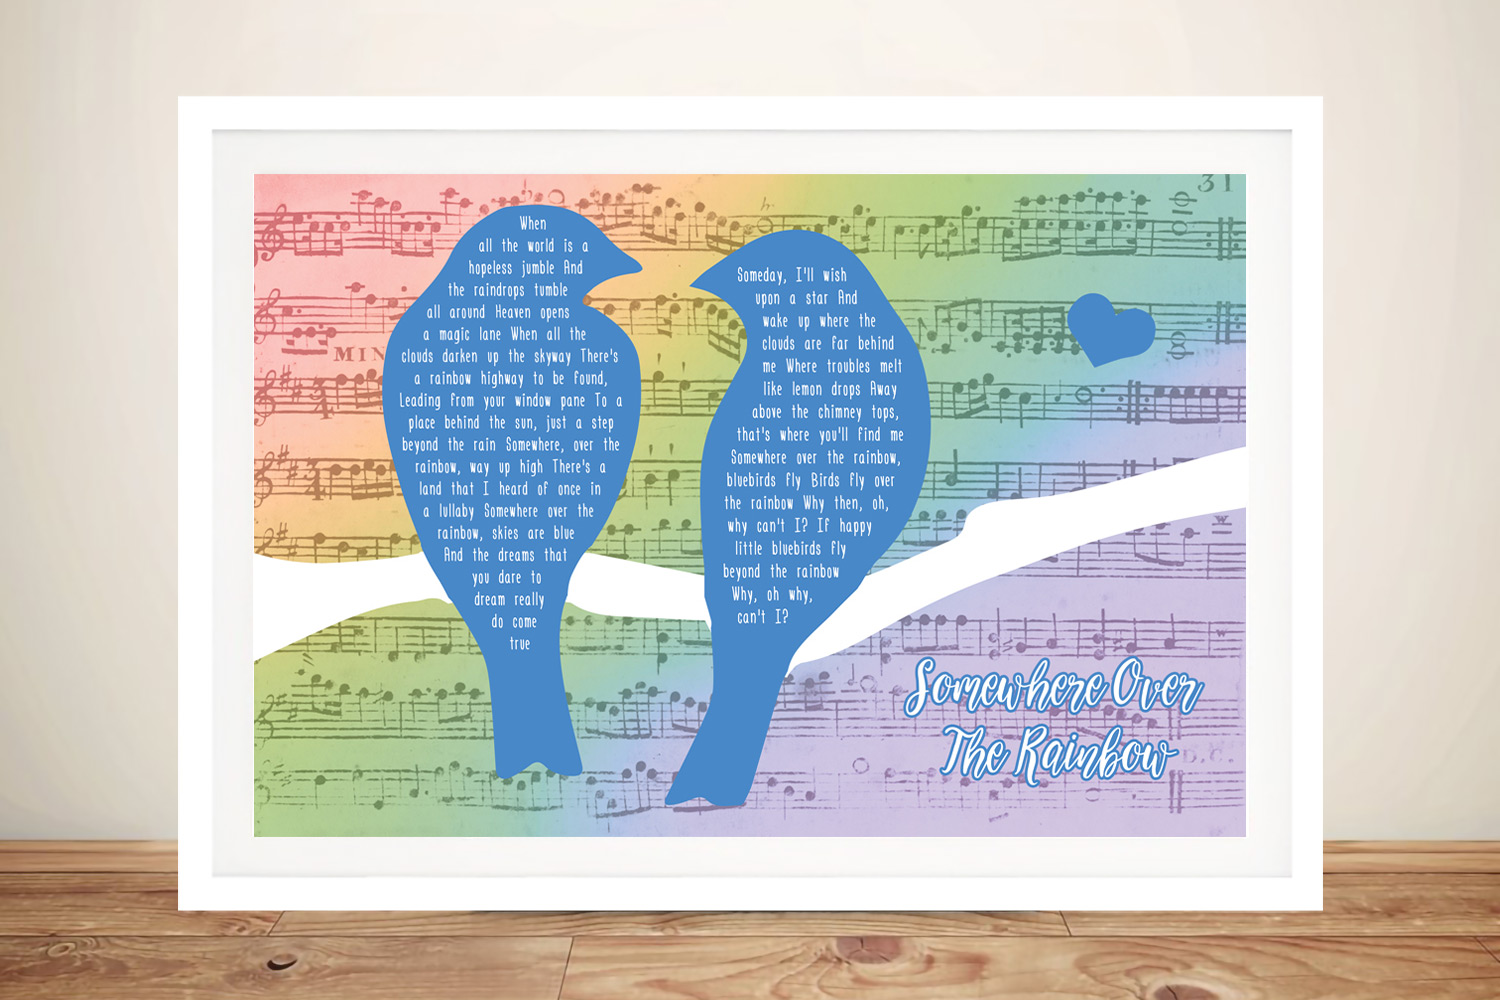 Songbirds Colourful Custom Canvas Art | Songbirds Bespoke Canvas Art